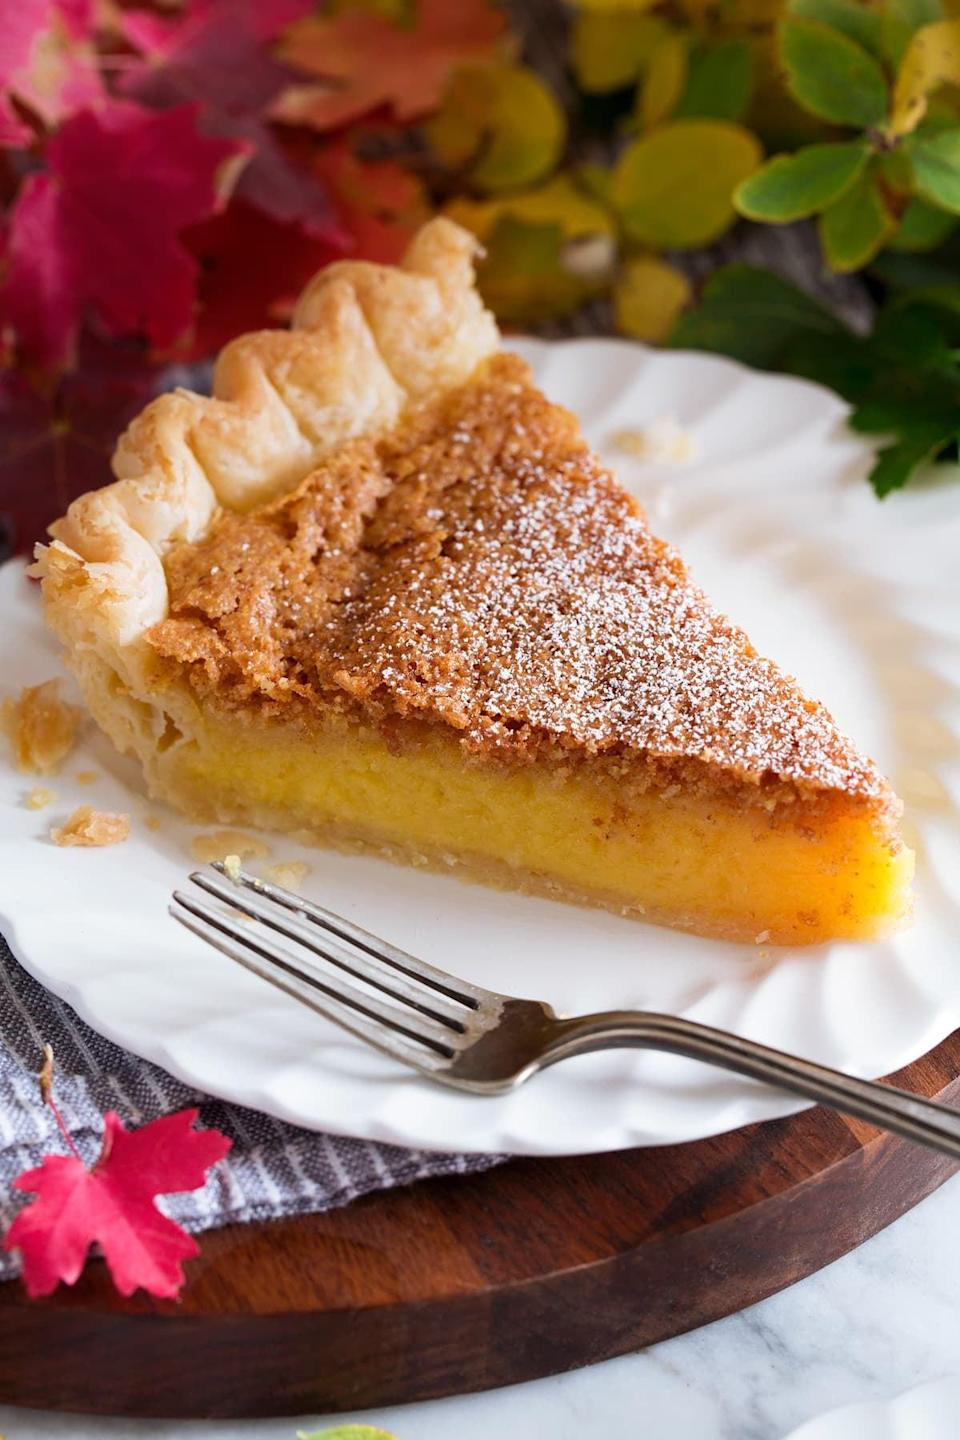 "<p>If you've never had chess pie, now's your chance to try it! This popular dessert originated in England, and is essentially a custard-style pie with a crisp browned topping. Not only is it sweet and fluffy, but it's also incredibly easy to make.</p> <p><strong>Get the recipe</strong>: <a href=""https://www.cookingclassy.com/chess-pie/"" class=""link rapid-noclick-resp"" rel=""nofollow noopener"" target=""_blank"" data-ylk=""slk:chess pie"">chess pie</a></p>"